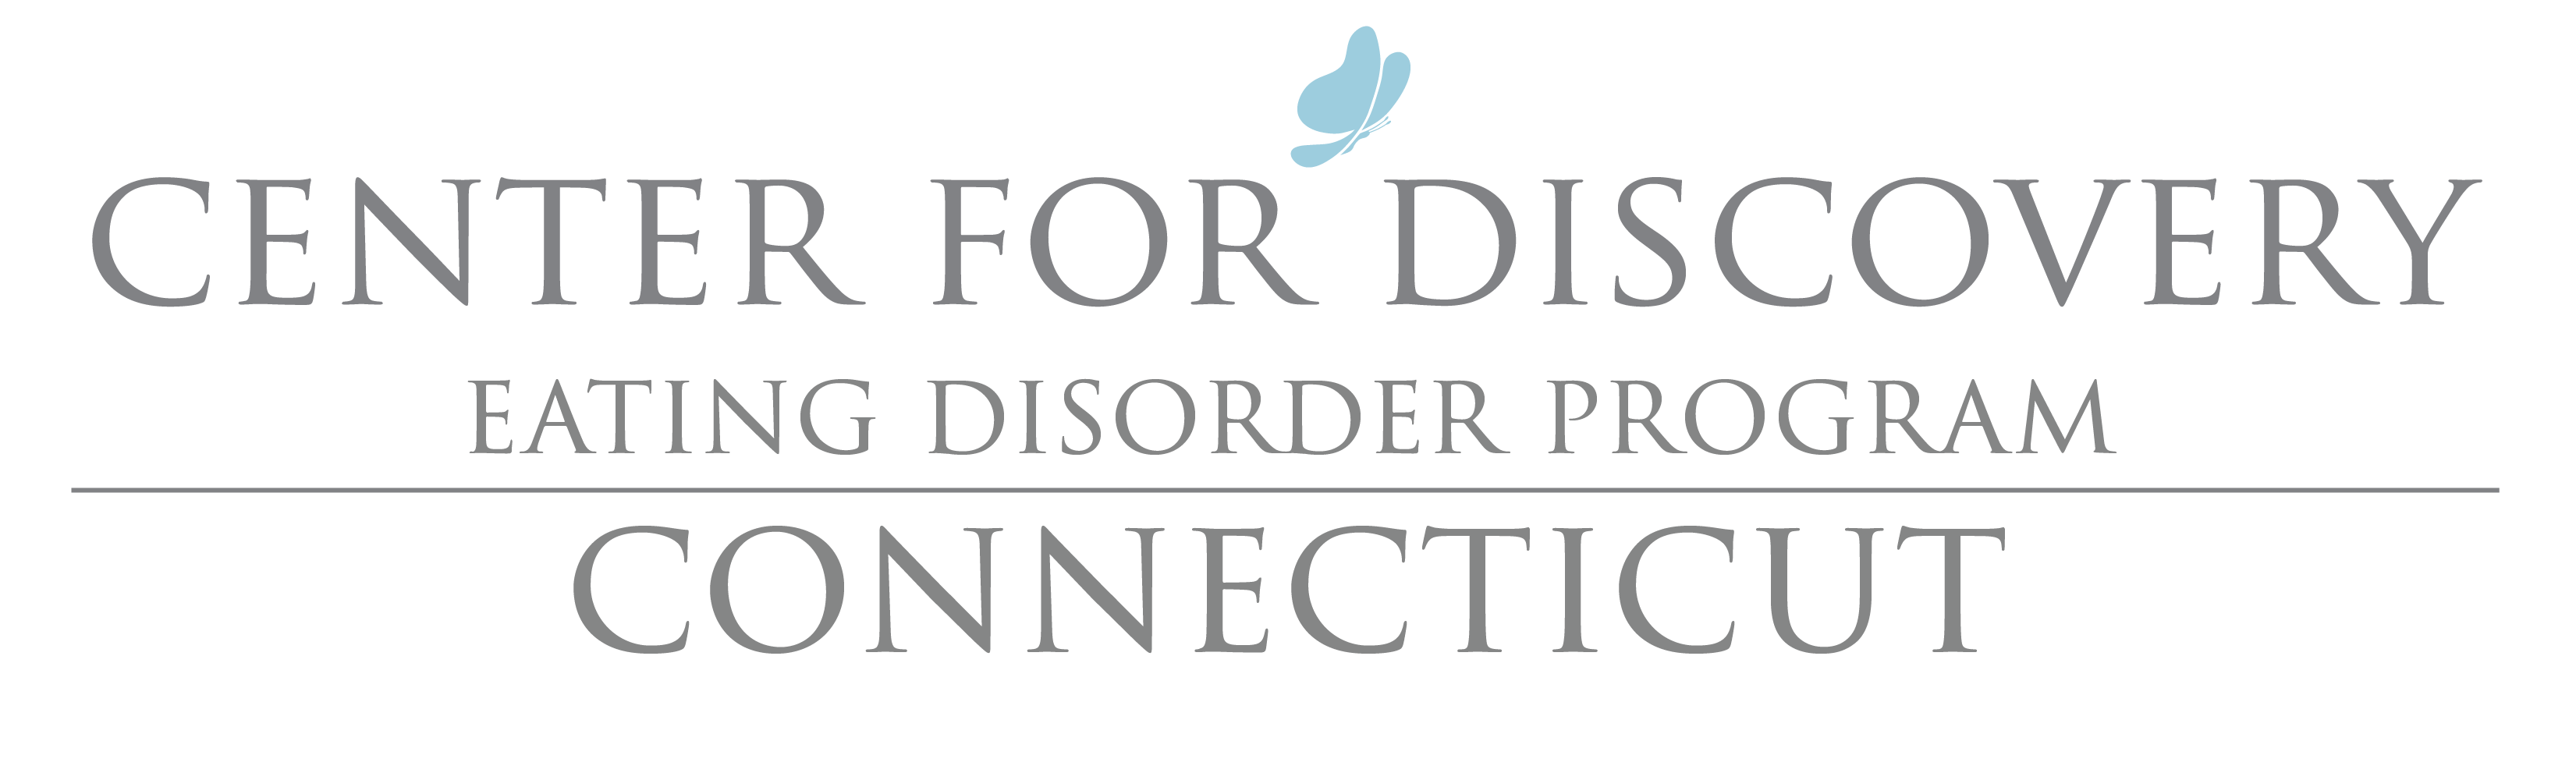 Center For Discovery Eating Disorder Program